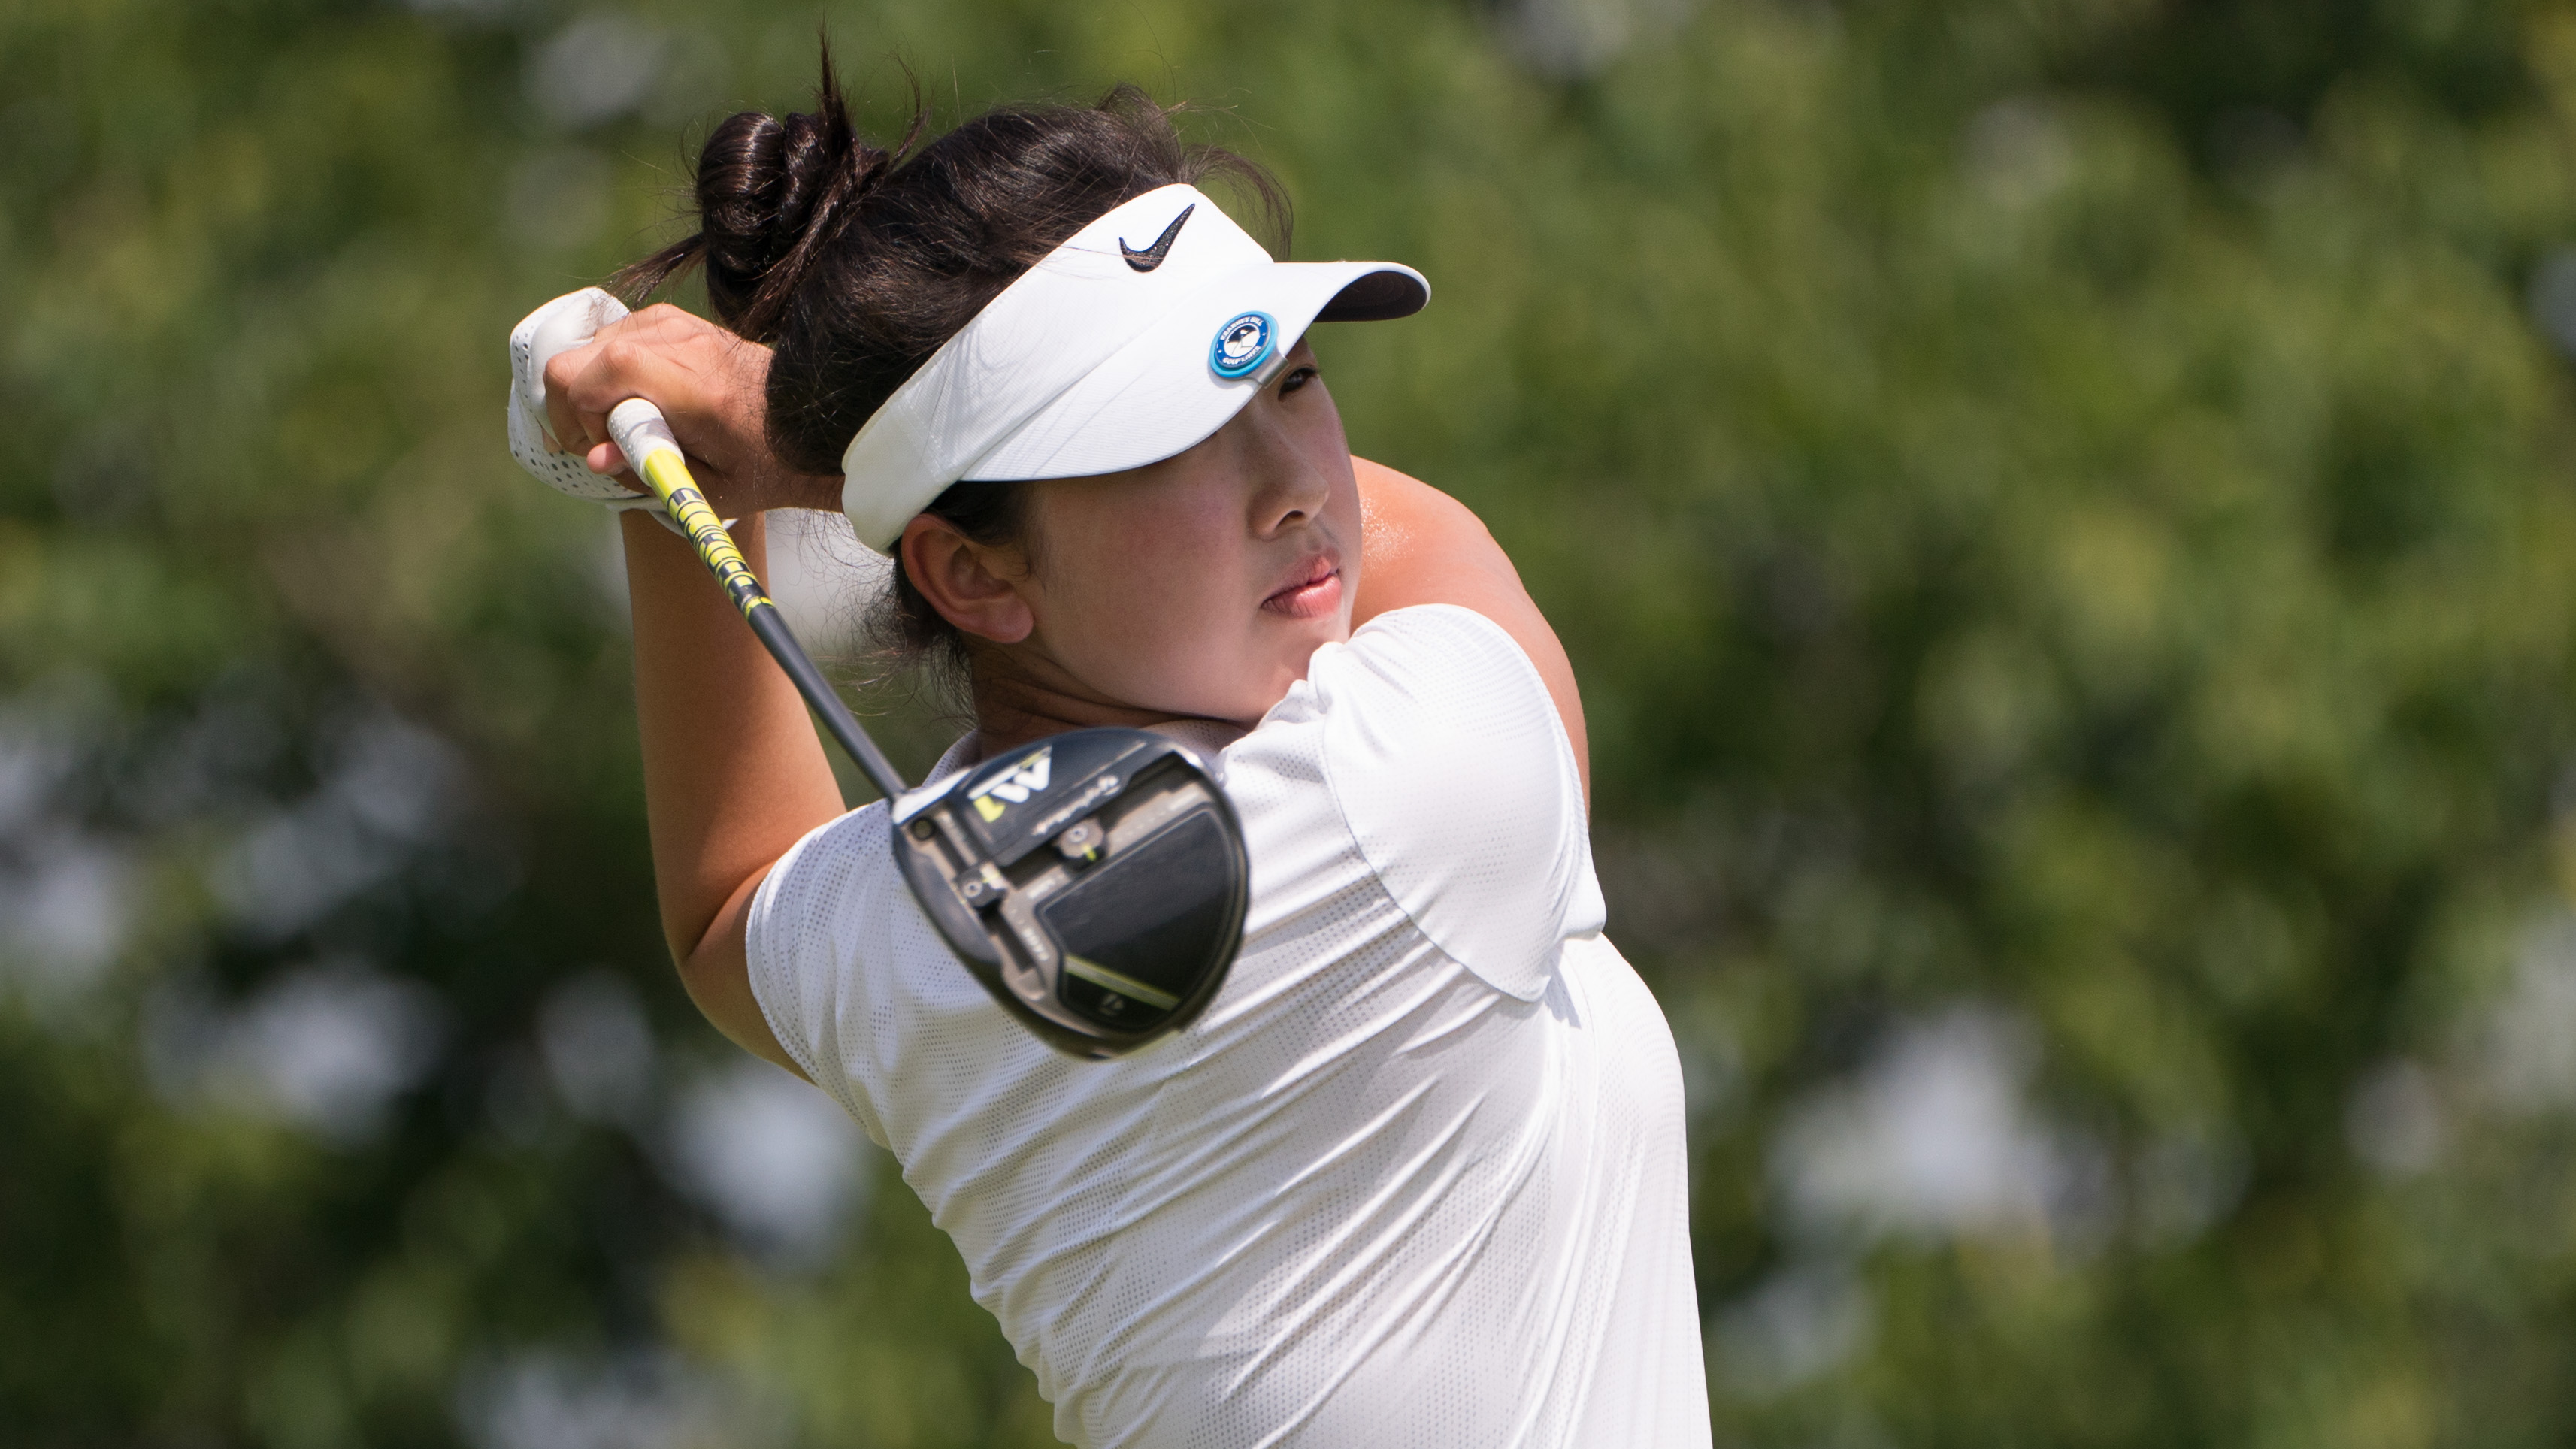 Yealimi Noh looking for redemption after last year's second-place finish at Girls Jr. PGA Champ